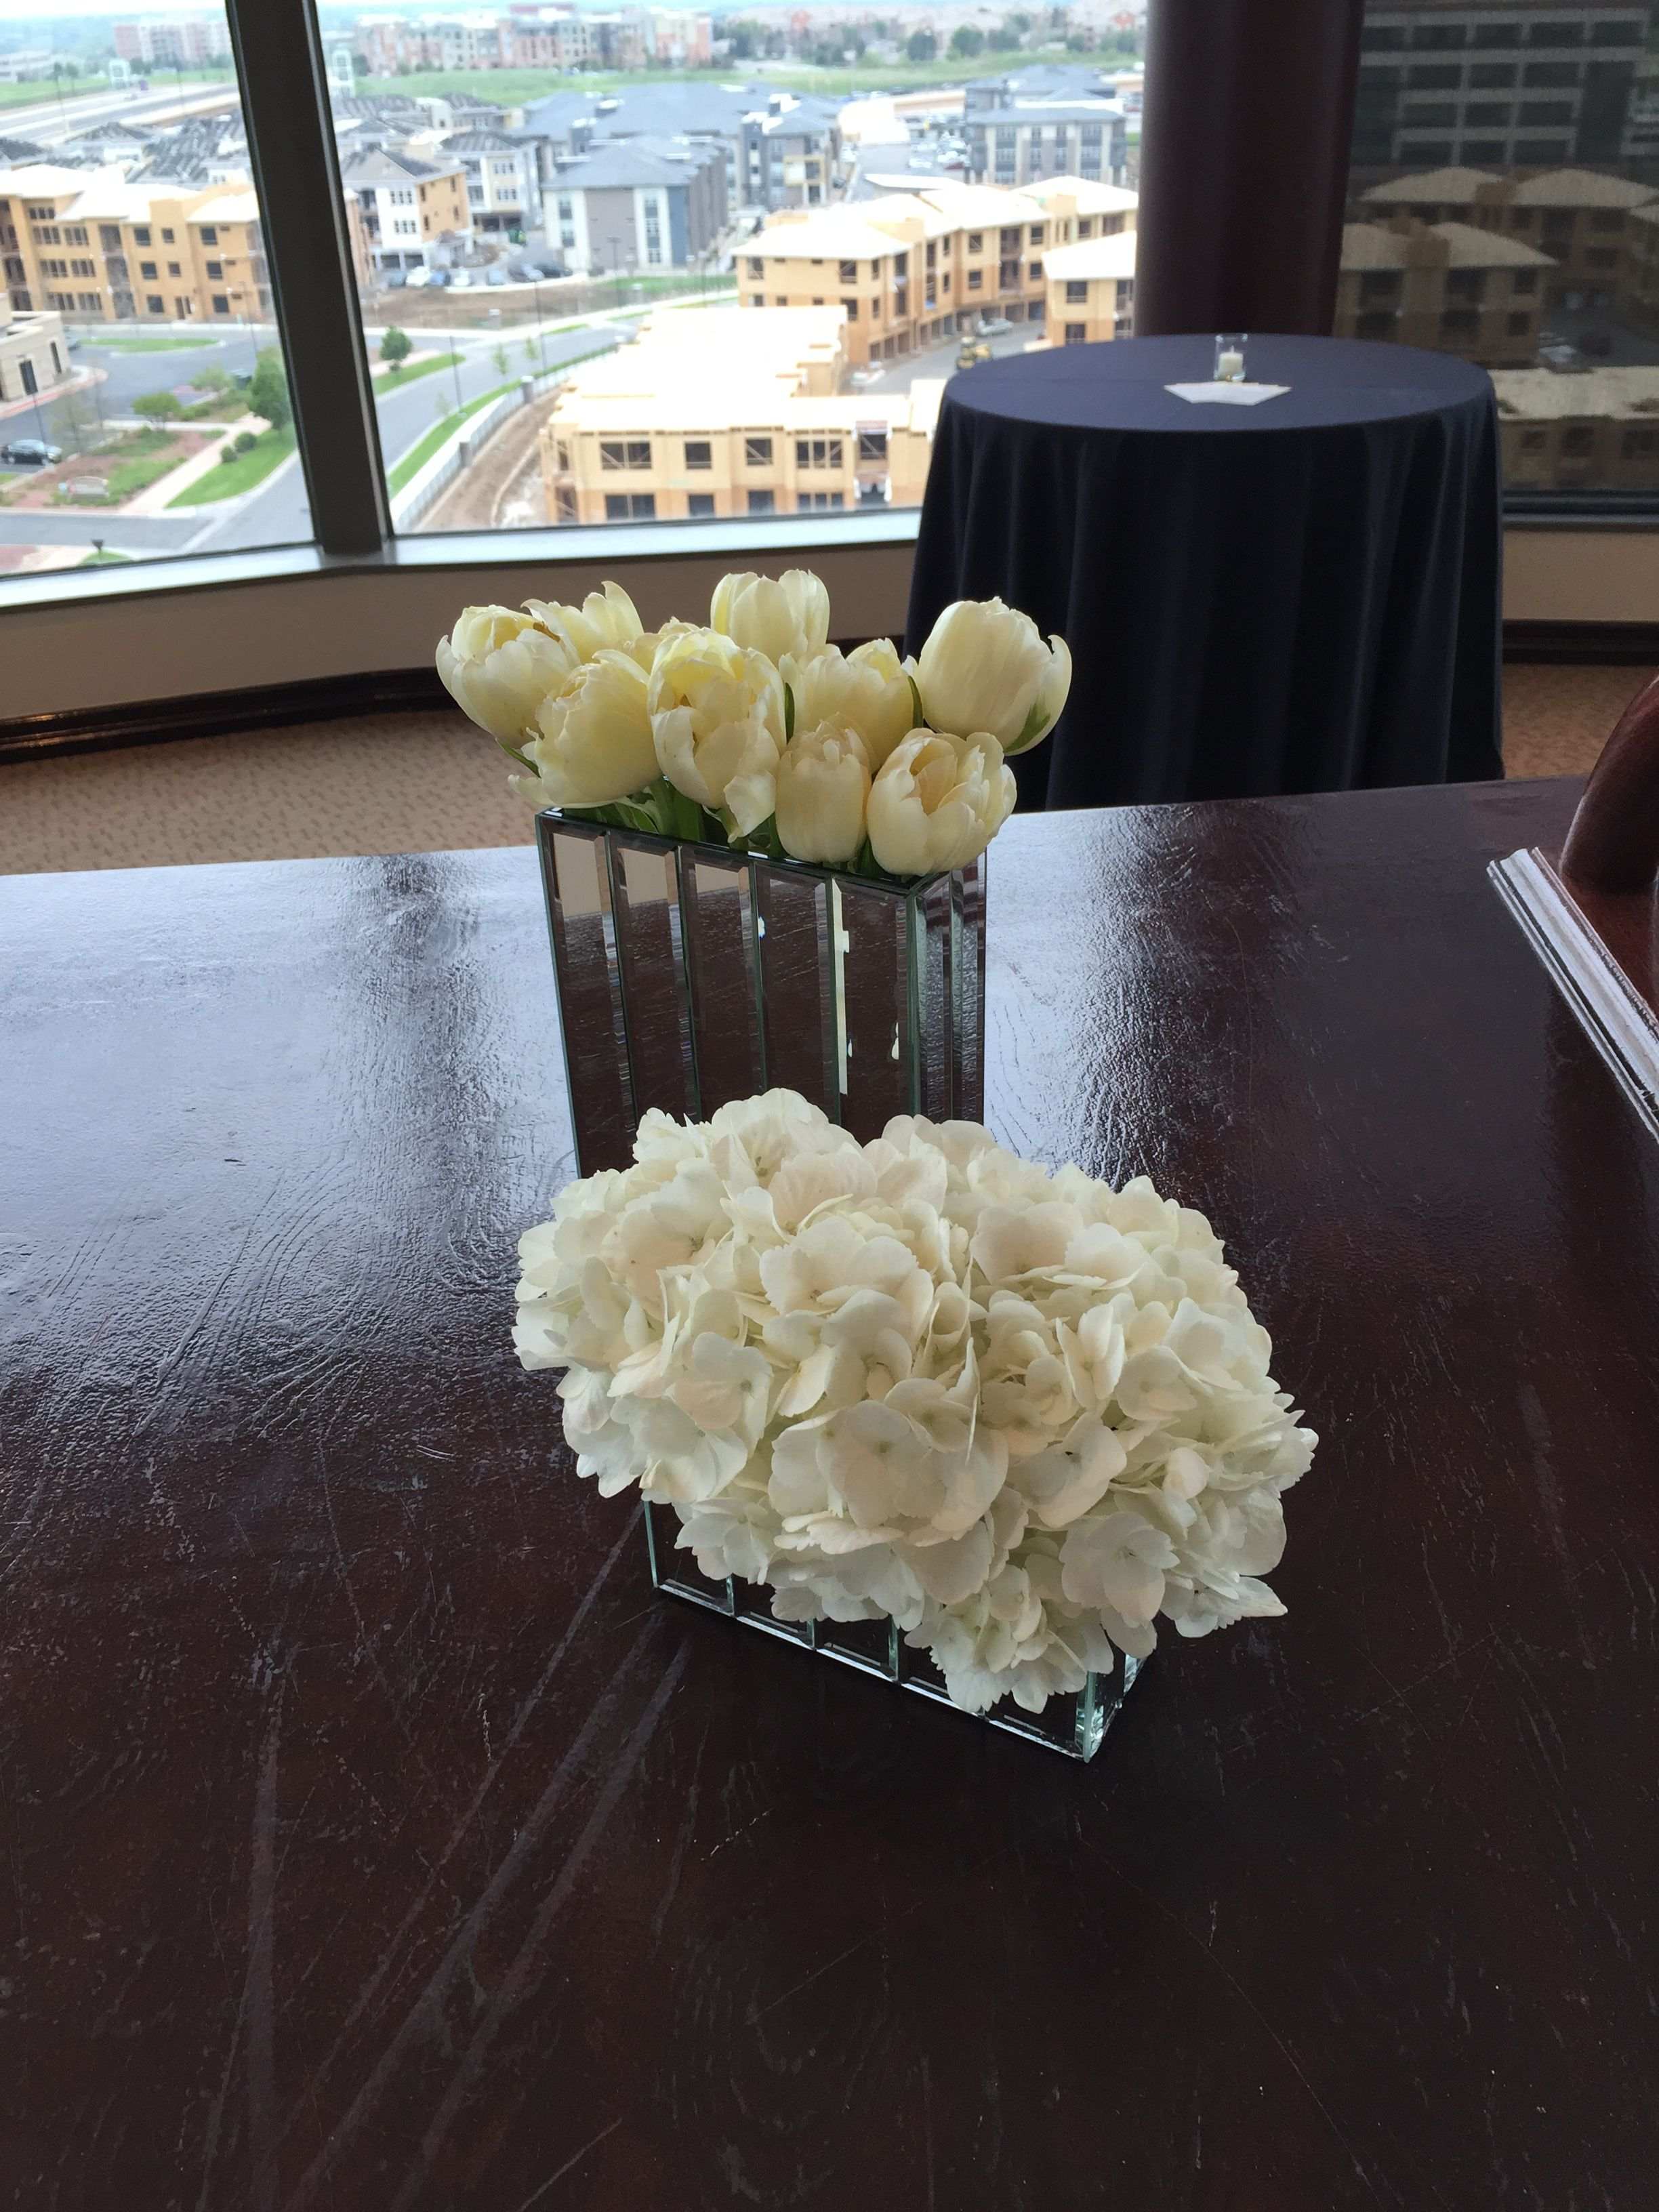 option for elegant mirrored vases to use for lesser expensive lining of the tables.  photo to show how the white hydrangea will look in them.